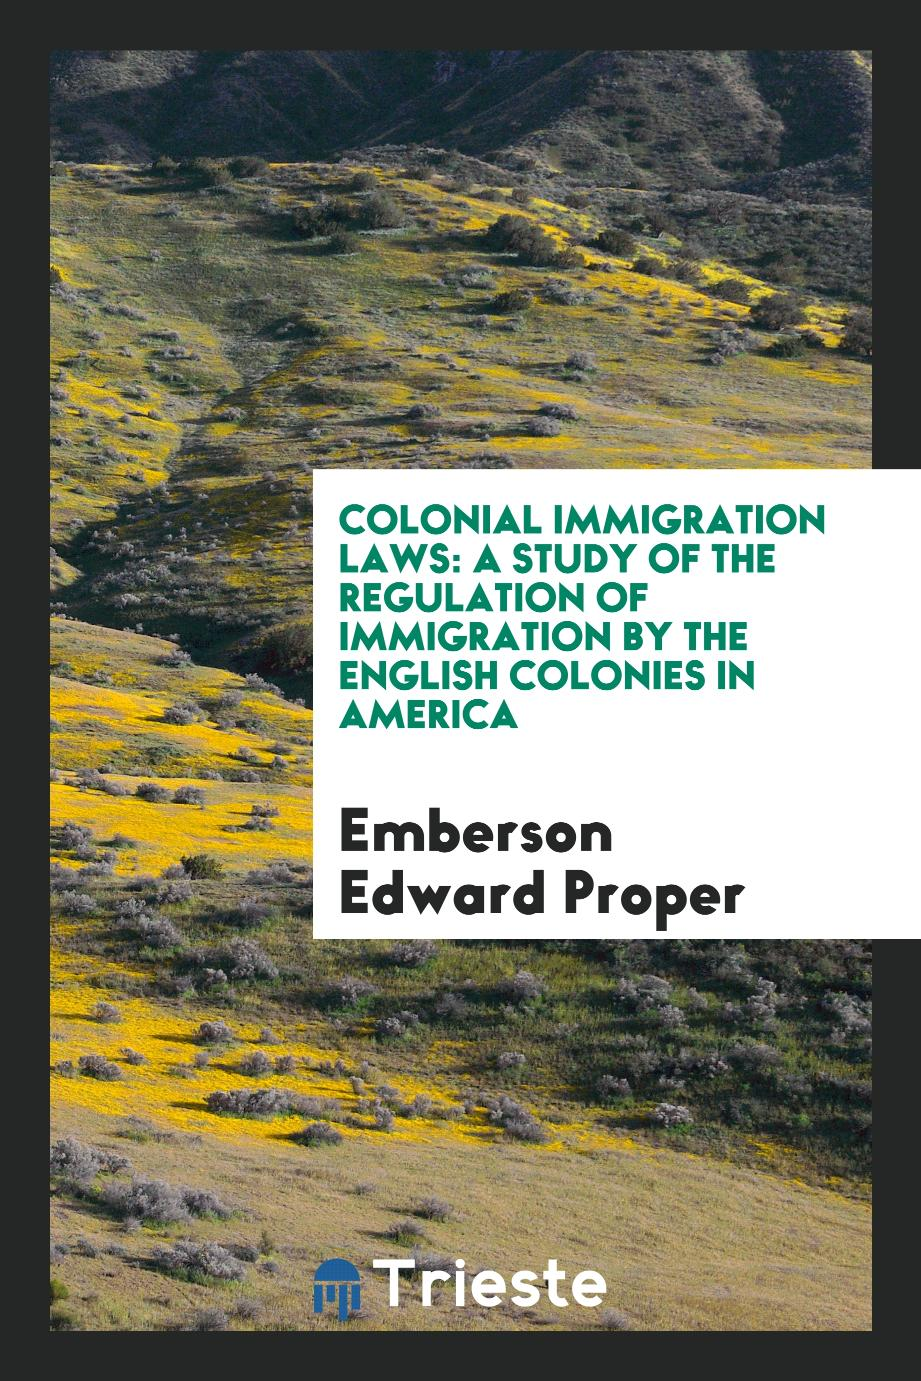 Colonial Immigration Laws: A Study of the Regulation of Immigration by the English Colonies in America